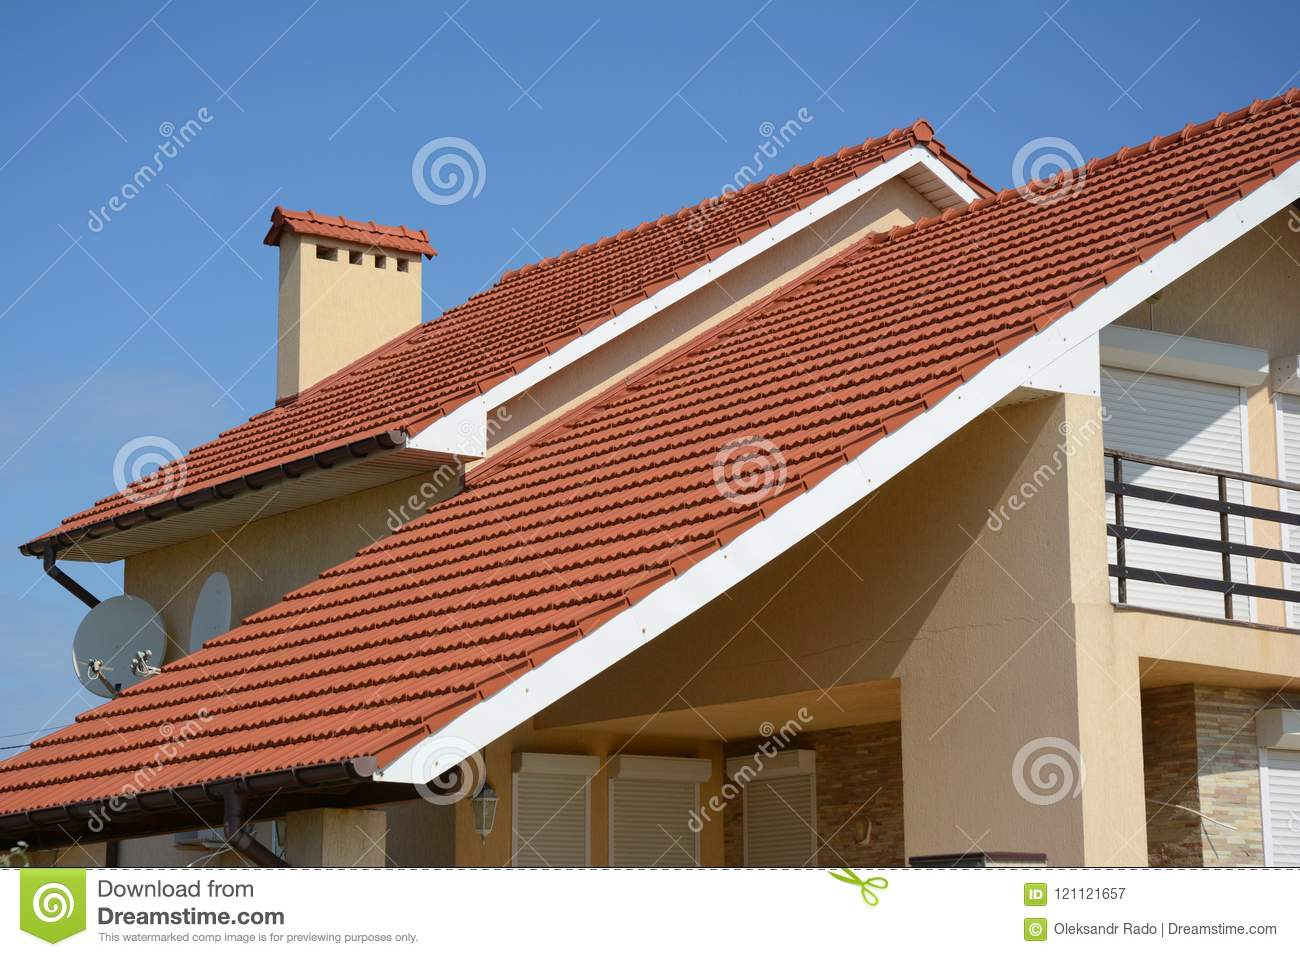 https www dreamstime com house clay tile roof rain gutter chimney gable valley type construction building attic tiles different types designs image121121657